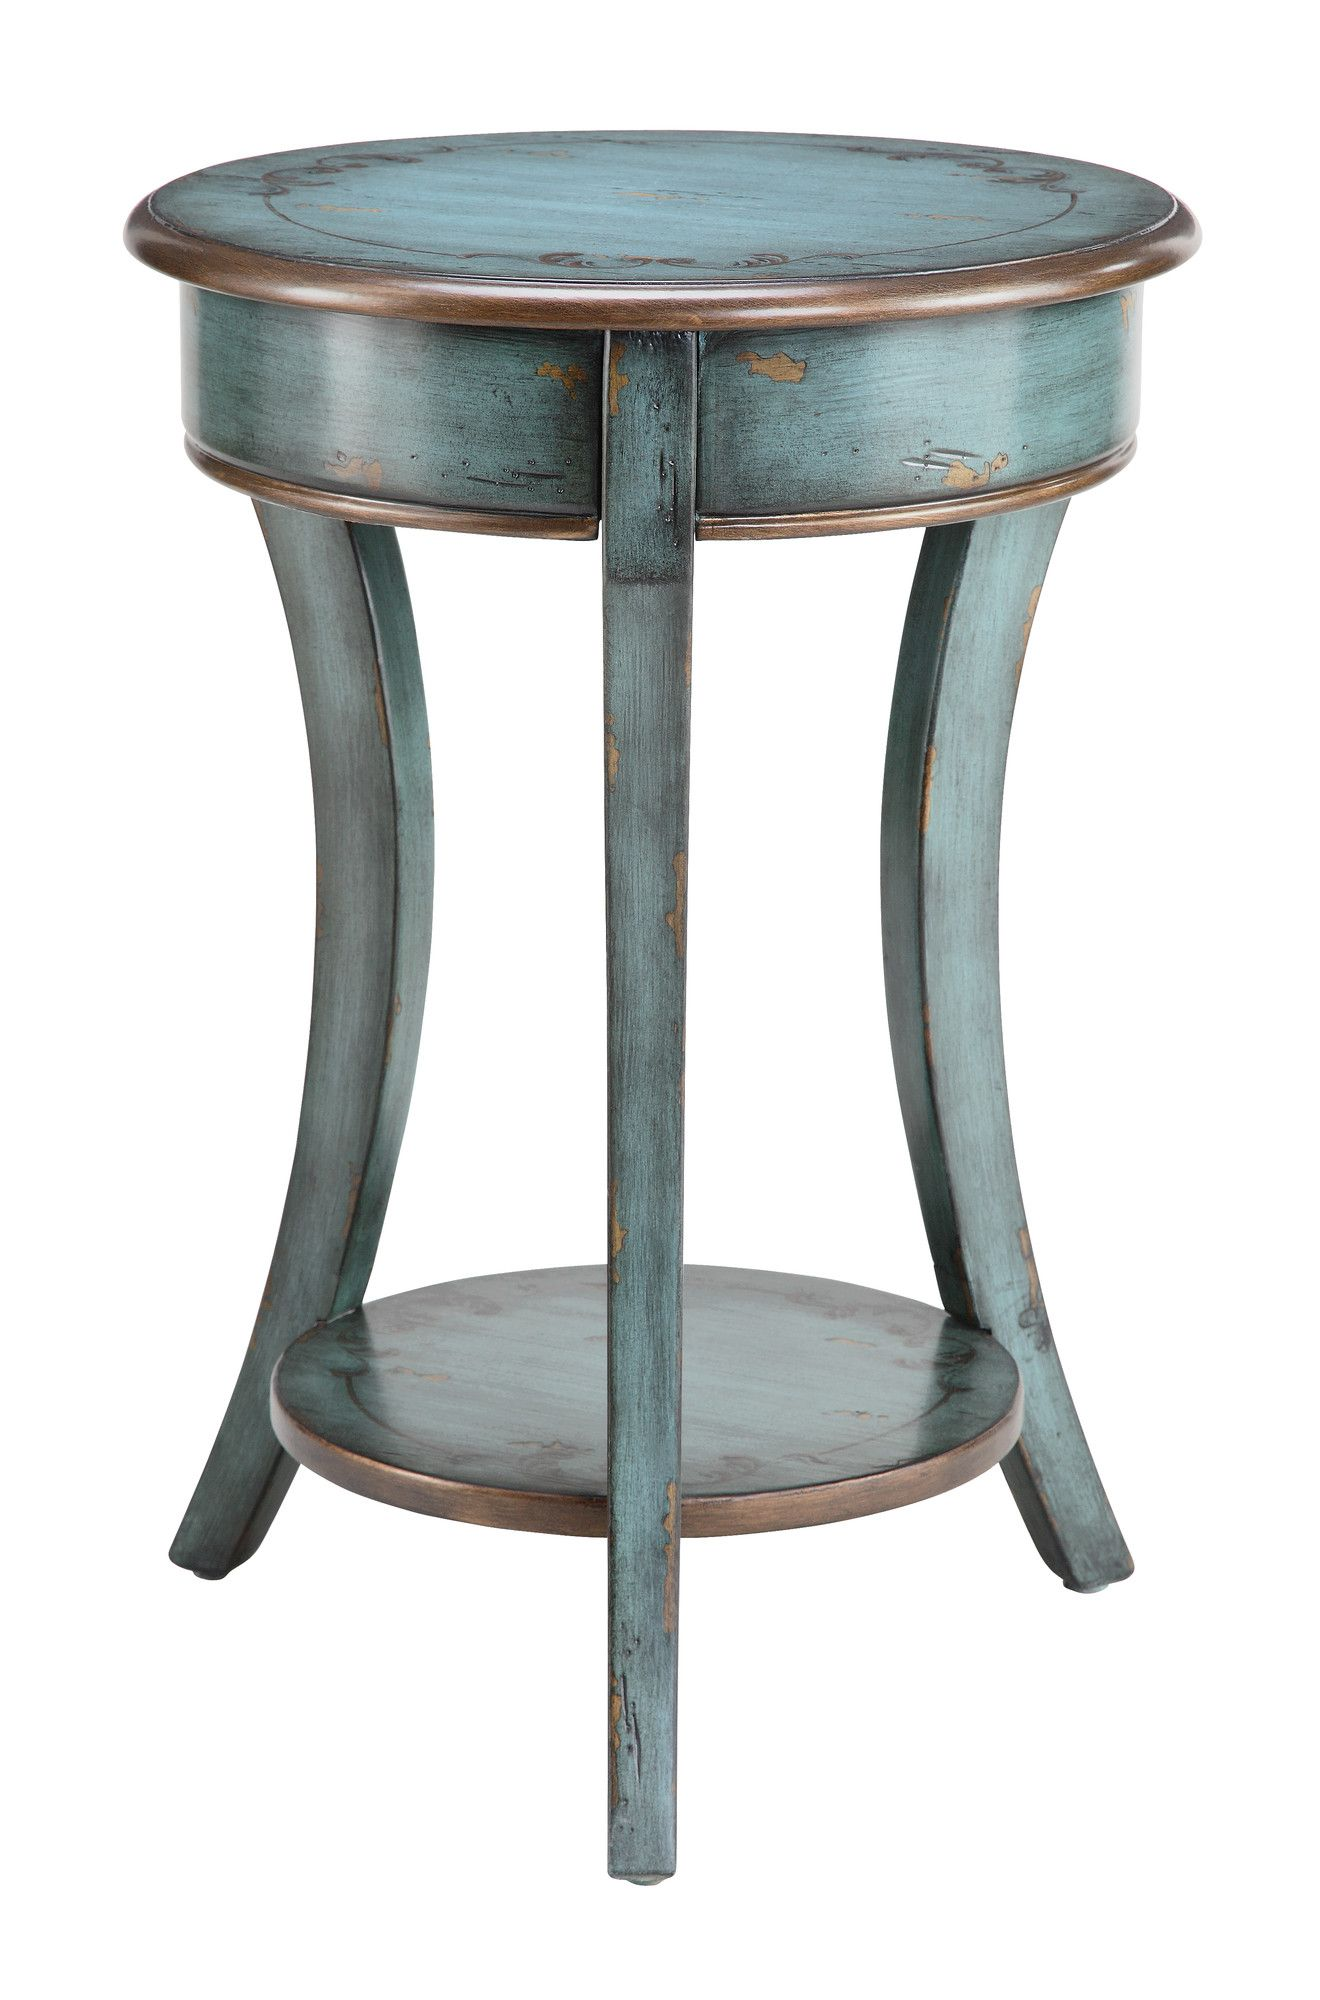 stein world painted treasures end table bronzed and distressed paint antique small accent tables job round decorative cover ashley furniture nesting wine bottle rack desk legs